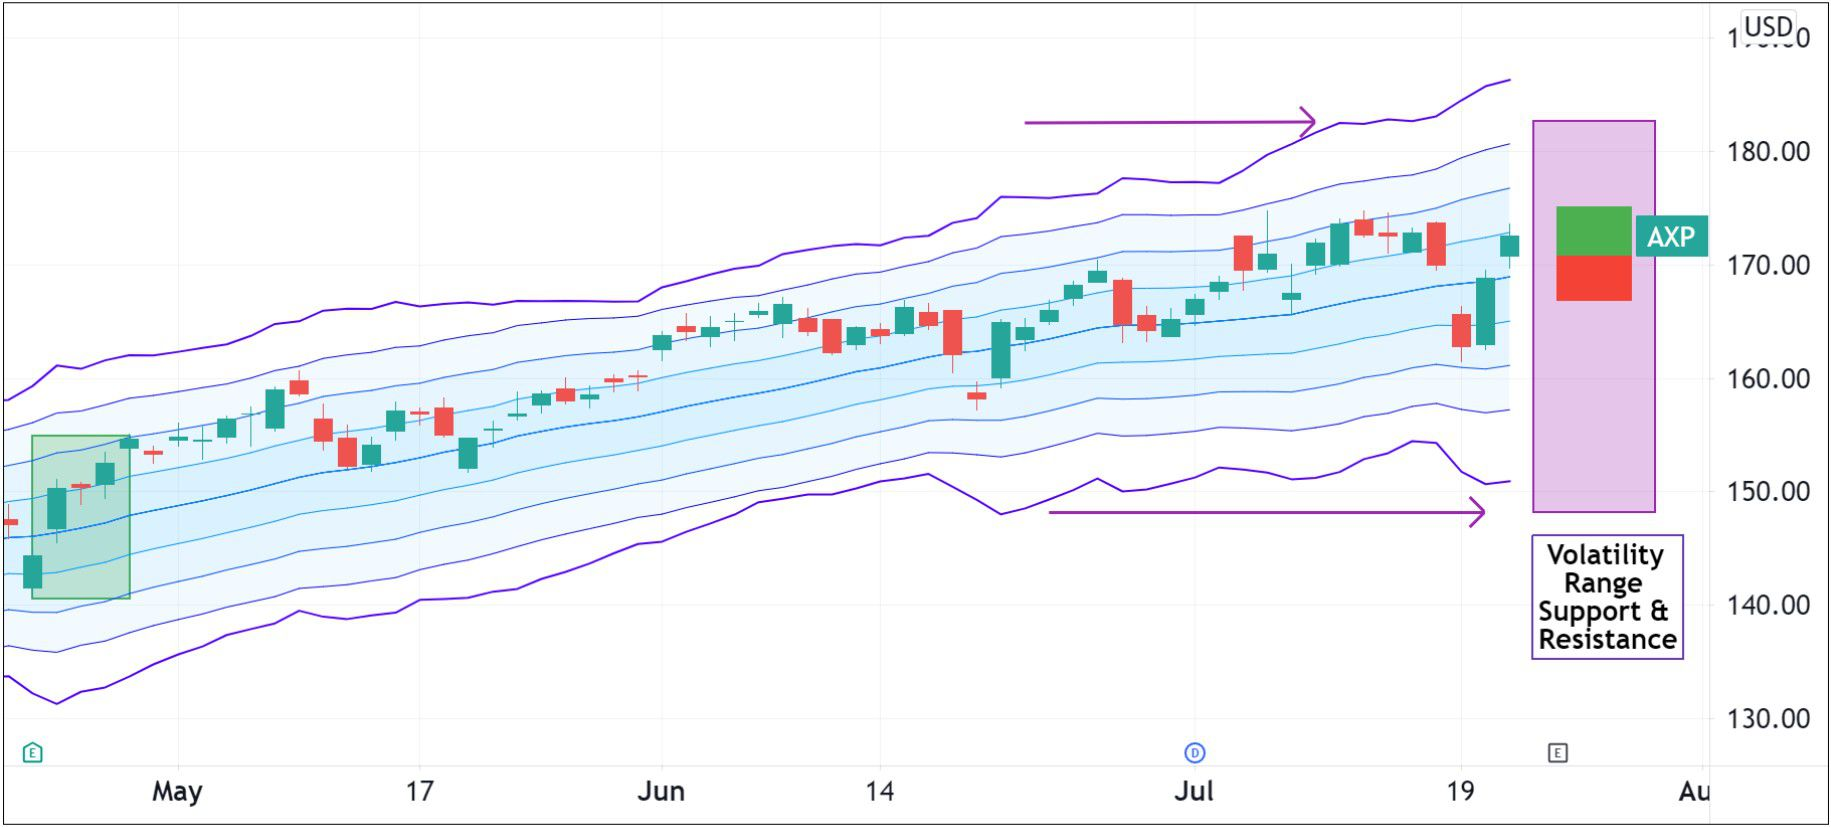 Volatility pattern for American Express (AXP)